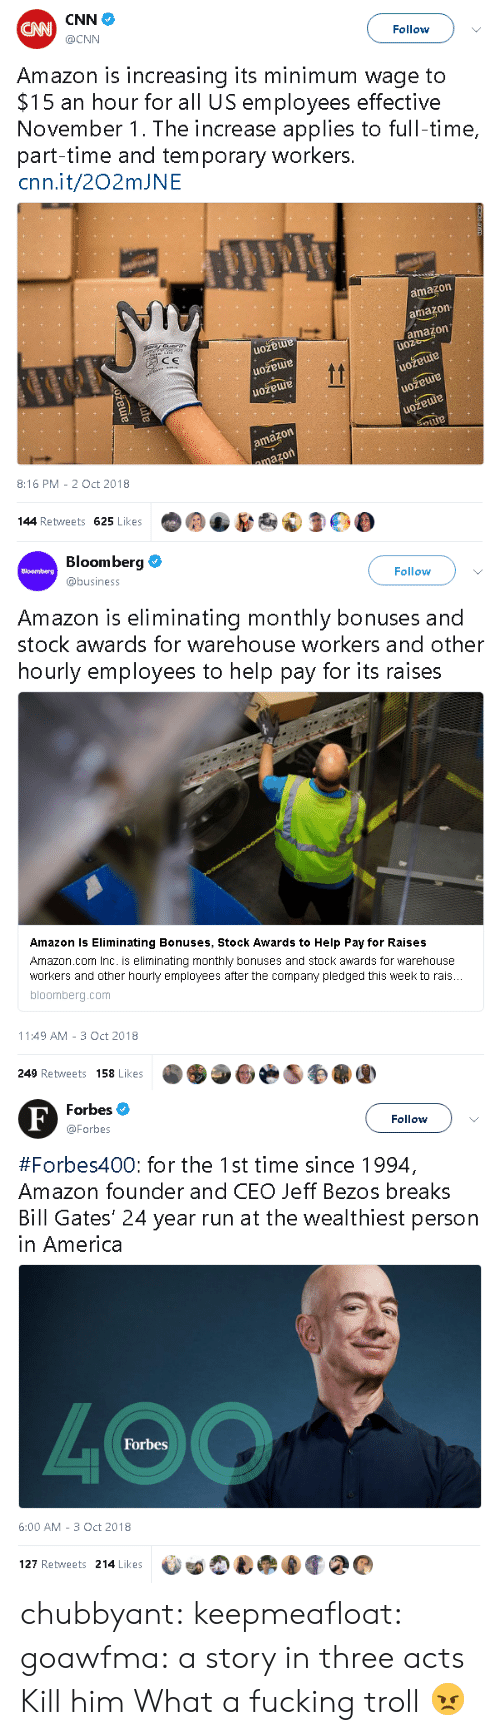 Warehouse: CNN  CAN  @CNN  Follow  Amazon is increasing its minimum wage to  $15 an hour for all US employees effective  November 1. The increase applies to full-time,  part-time and temporary workers.  cnn.it/202mJNE  amazon  amazon  amazon  uoz  ocyduer  uozeue  CE  tt  amazon  amazon  uožeuie  uožeuue  amazon  ama  amazon  mazon  8:16 PM 2 Oct 2018  144 Retweets 625 Likes  le  amazo  ama  amagm  t   Bloomberg  Follow  Bloomberg  @business  Amazon is eliminating  monthly bonuses and  stock awards for warehouse workers and other  hourly employees to help pay for its raises  Amazon Is Eliminating Bonuses, Stock Awards to Help Pay for Raises  Amazon.com Inc. is eliminating monthly bonuses and stock awards for warehouse  workers and other hourly employees after the company pledged this week to rais...  bloomberg.com  11:49 AM 3 Oct 2018  249 Retweets 158 Likes   Forbes  F  Follow  @Forbes  #Forbes400: for the 1st time since 1994,  Amazon founder and CEO Jeff Bezos breaks  Bill Gates' 24 year run at the wealthiest person  in America  4OO  Forbes  6:00 AM 3 Oct 2018  127 Retweets 214 Likes chubbyant:  keepmeafloat:   goawfma: a story in three acts  Kill him   What a fucking troll 😠